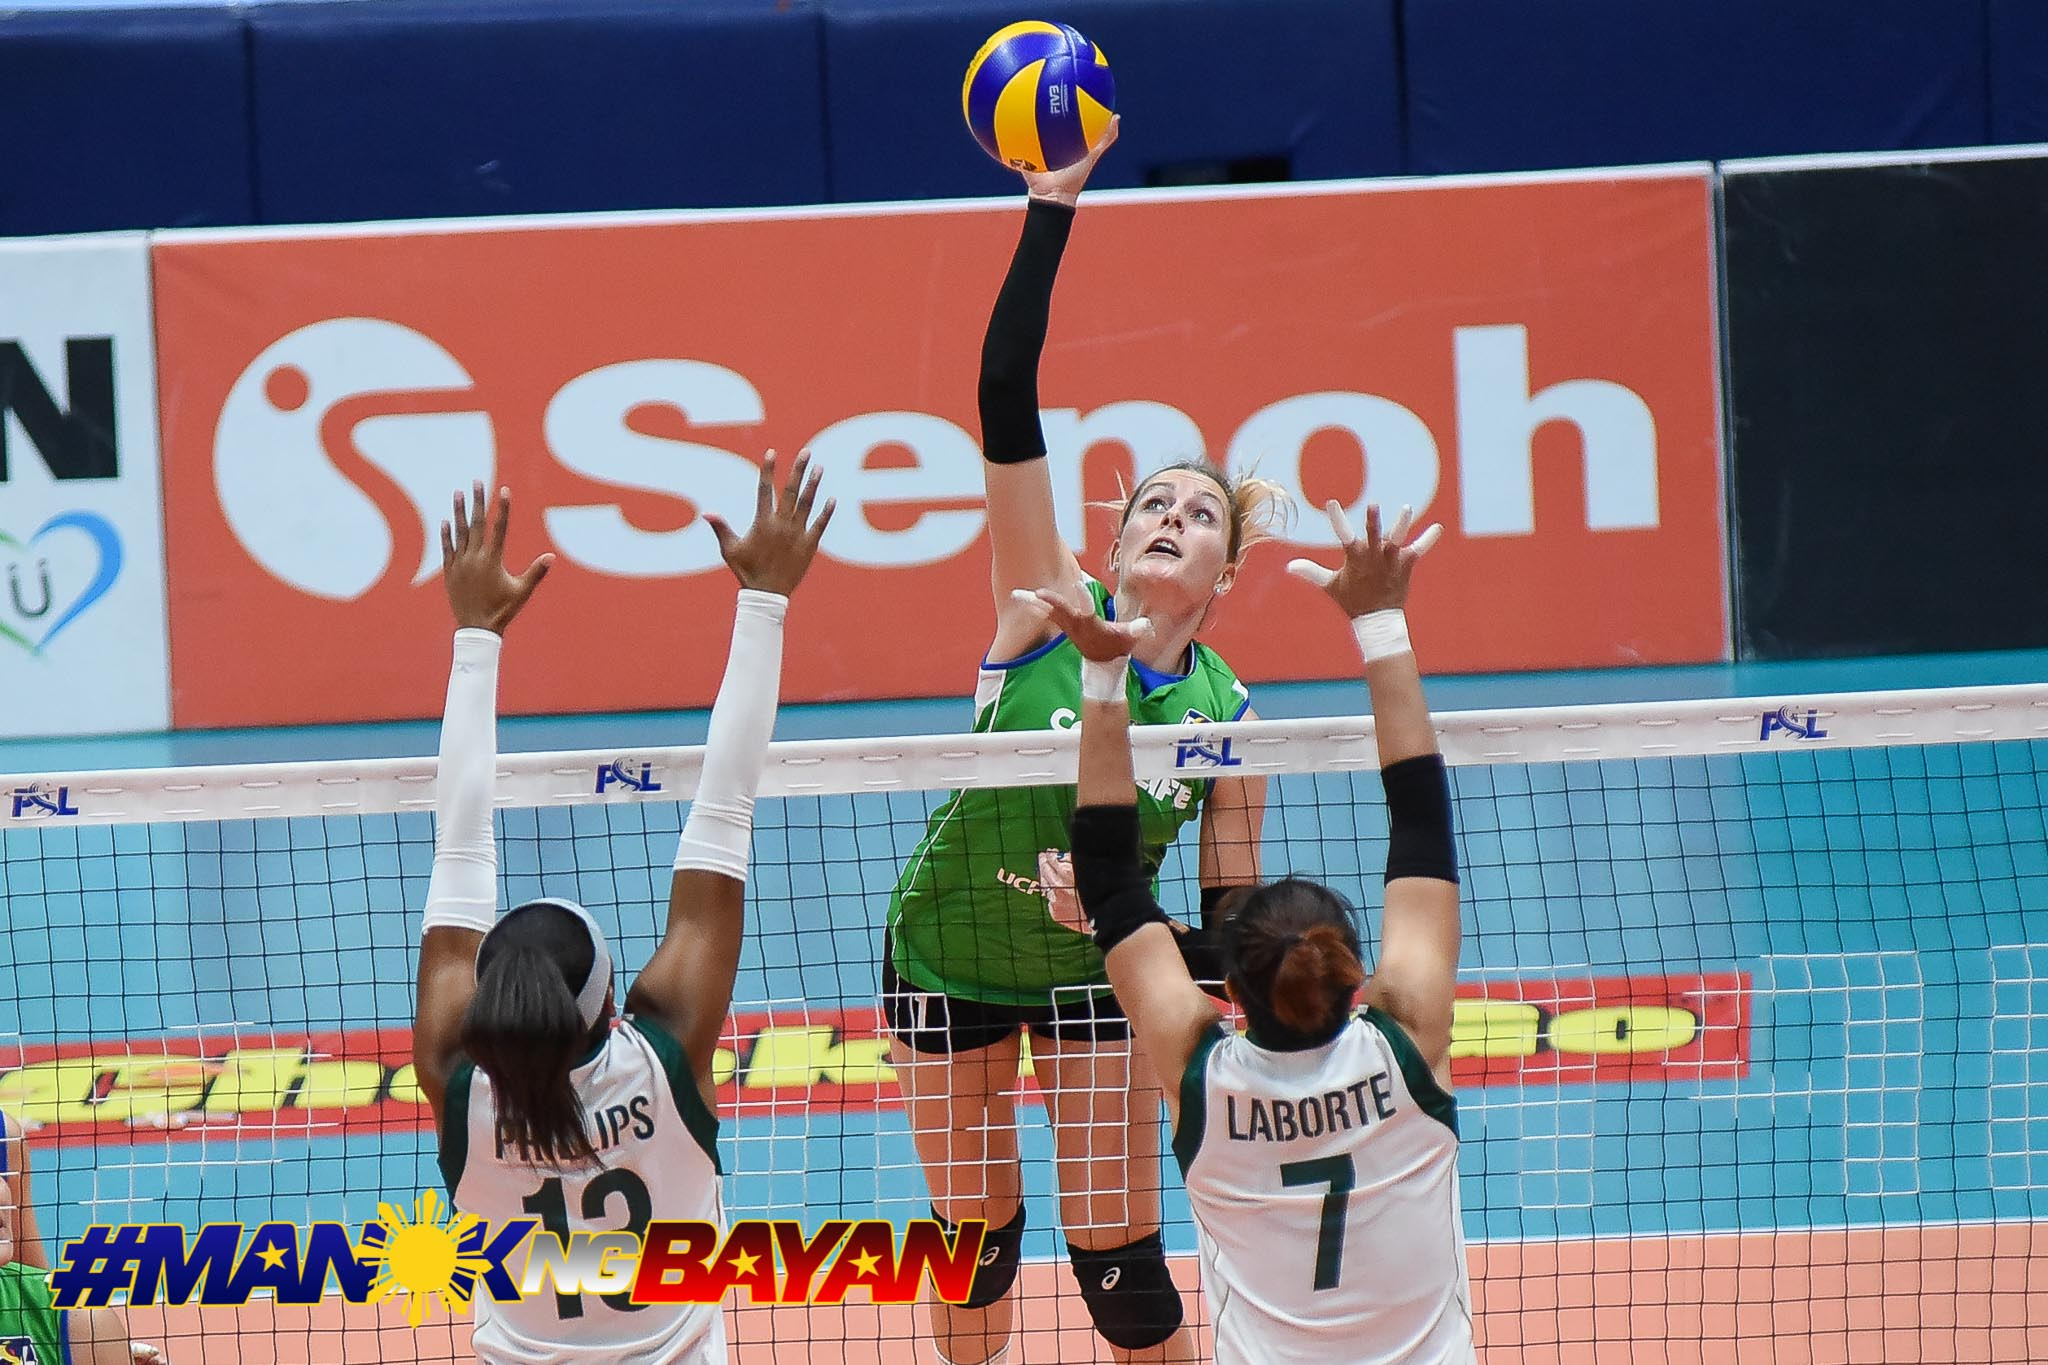 Tiebreaker Times Cocolife fends off gritty Sta. Lucia News PSL Volleyball  Tina Salak Taylor Milton Sta. Lucia Lady Realtors Sara Klisura Moro Branislav Marisa Field George Pascua Denden Lazaro Cocolife Asset Managers Bohdana Anisova 2018 PSL Season 2018 PSL Grand Prix